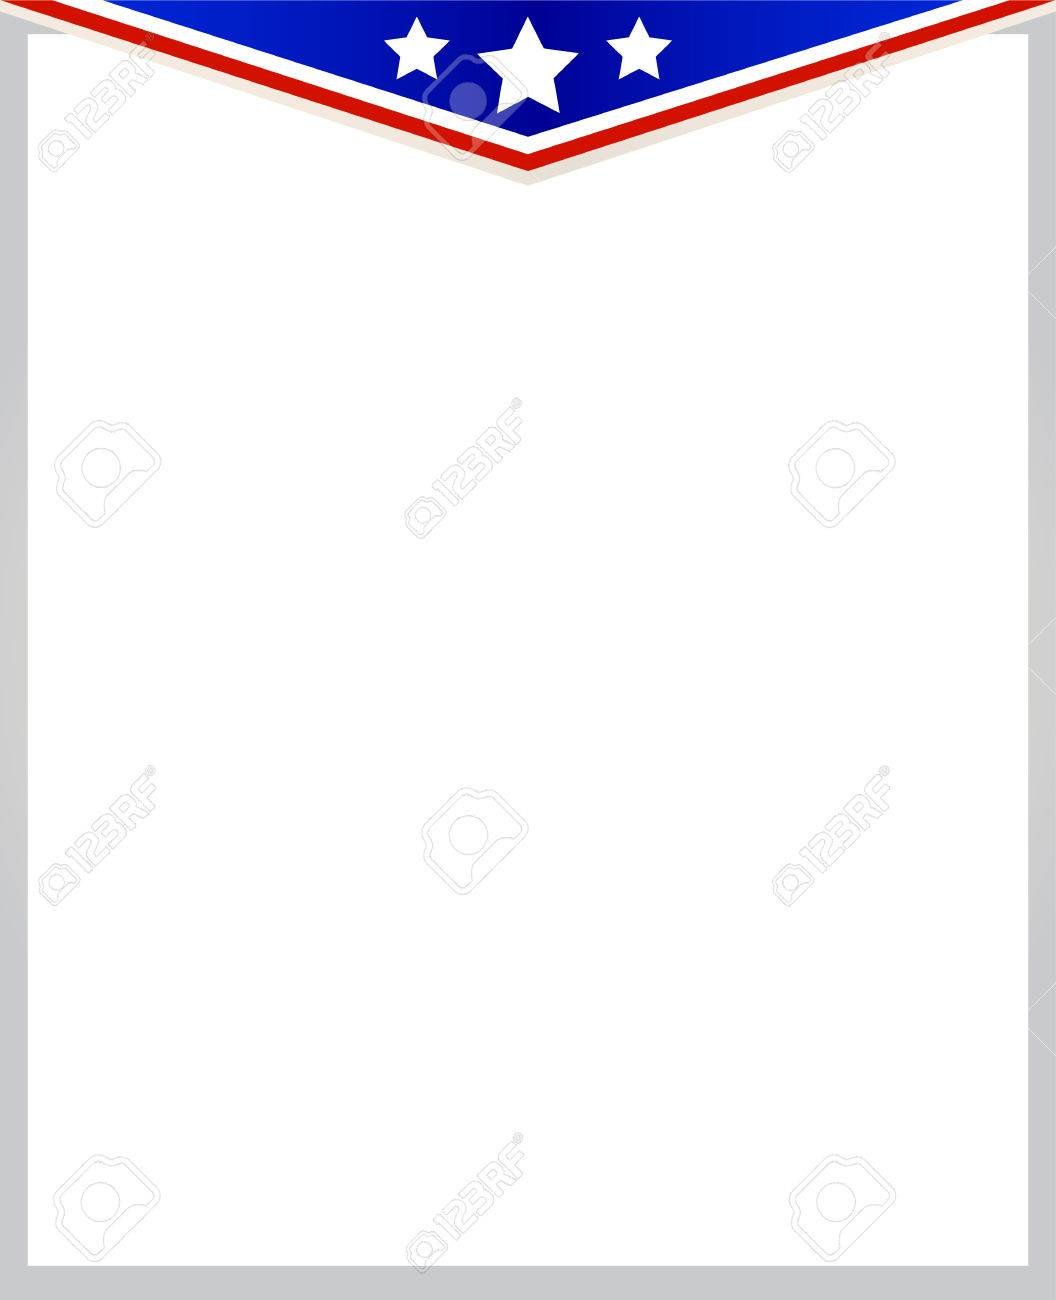 Abstract American Flag Frame On White Background With Copy Space ...